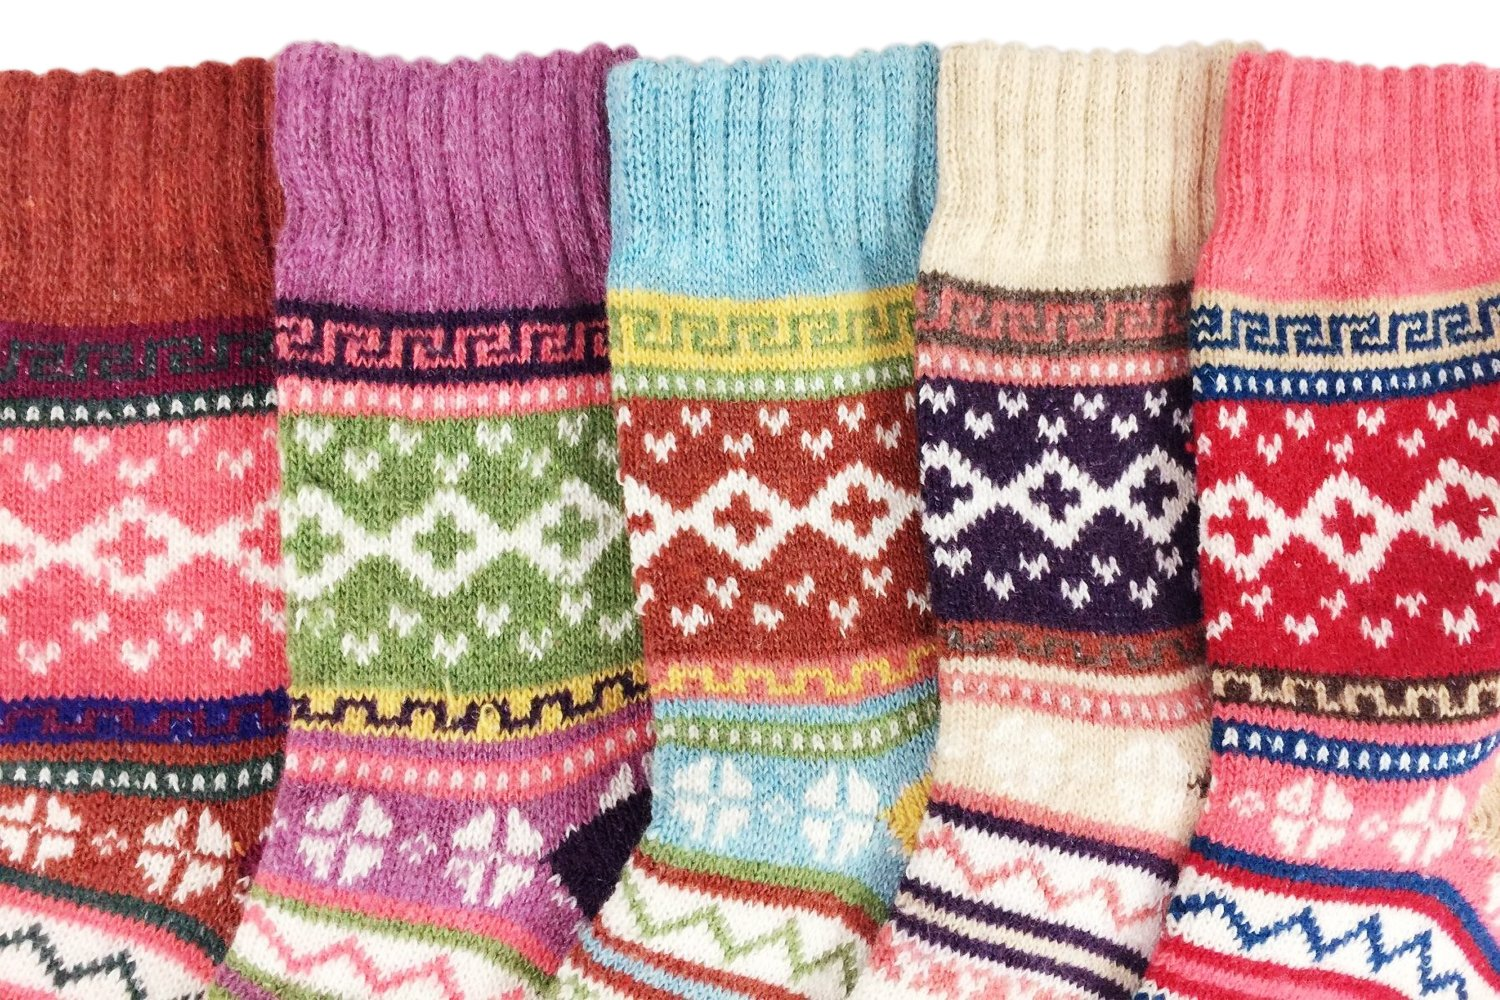 JOYEBUY 5 Pack Winter Fall Women Socks Vintage Style Cotton Knitting Wool Warm Crew Socks (One Size, Style 5) by JOYEBUY (Image #4)